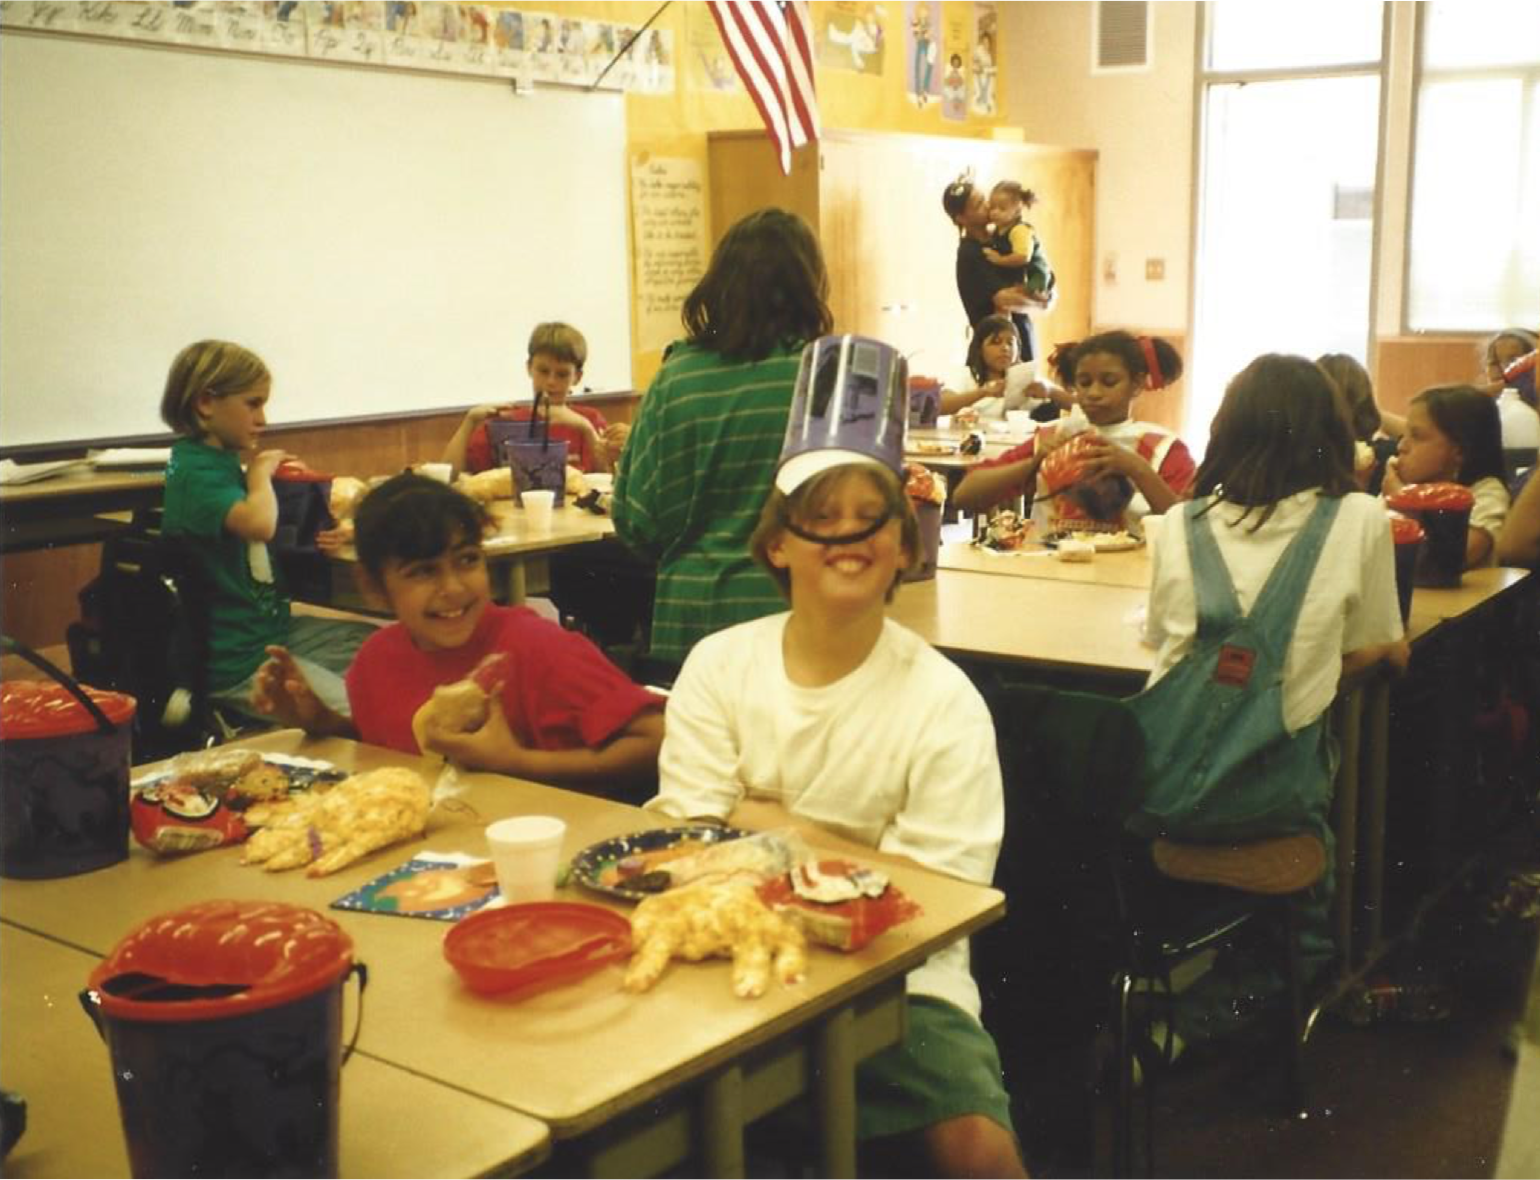 (My brother in 4th grade at class party, 1997)